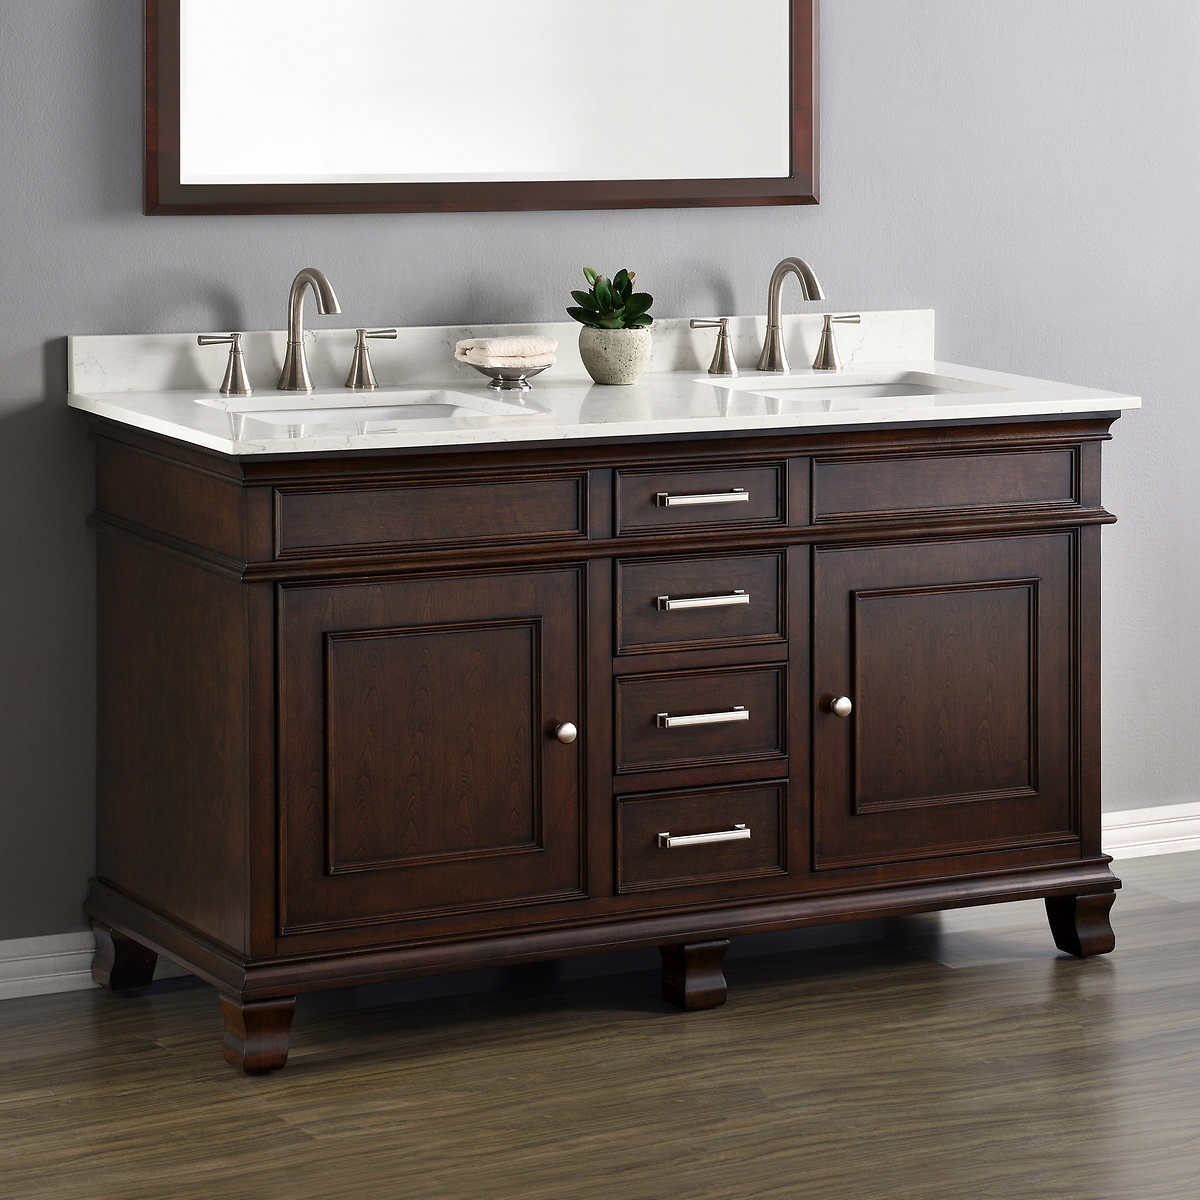 vanity bathroom double sink. Bathroom Double Sink Vanity double sink vanities  costco Pleasing 60 Decorating Inspiration Of